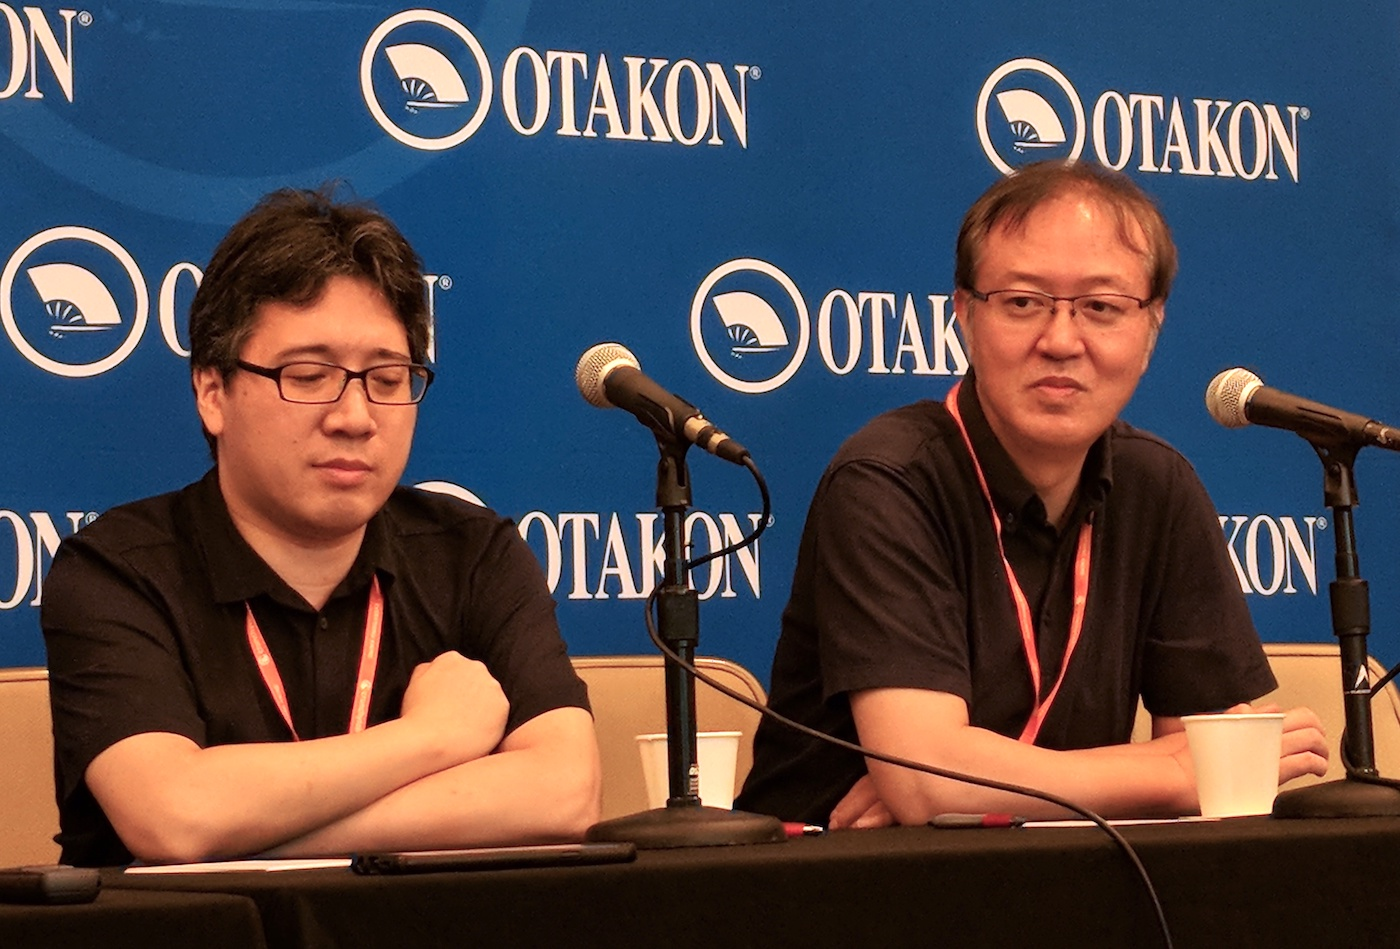 Yoshinari and Otsuka sitting in front of an Otakon banner, thinking